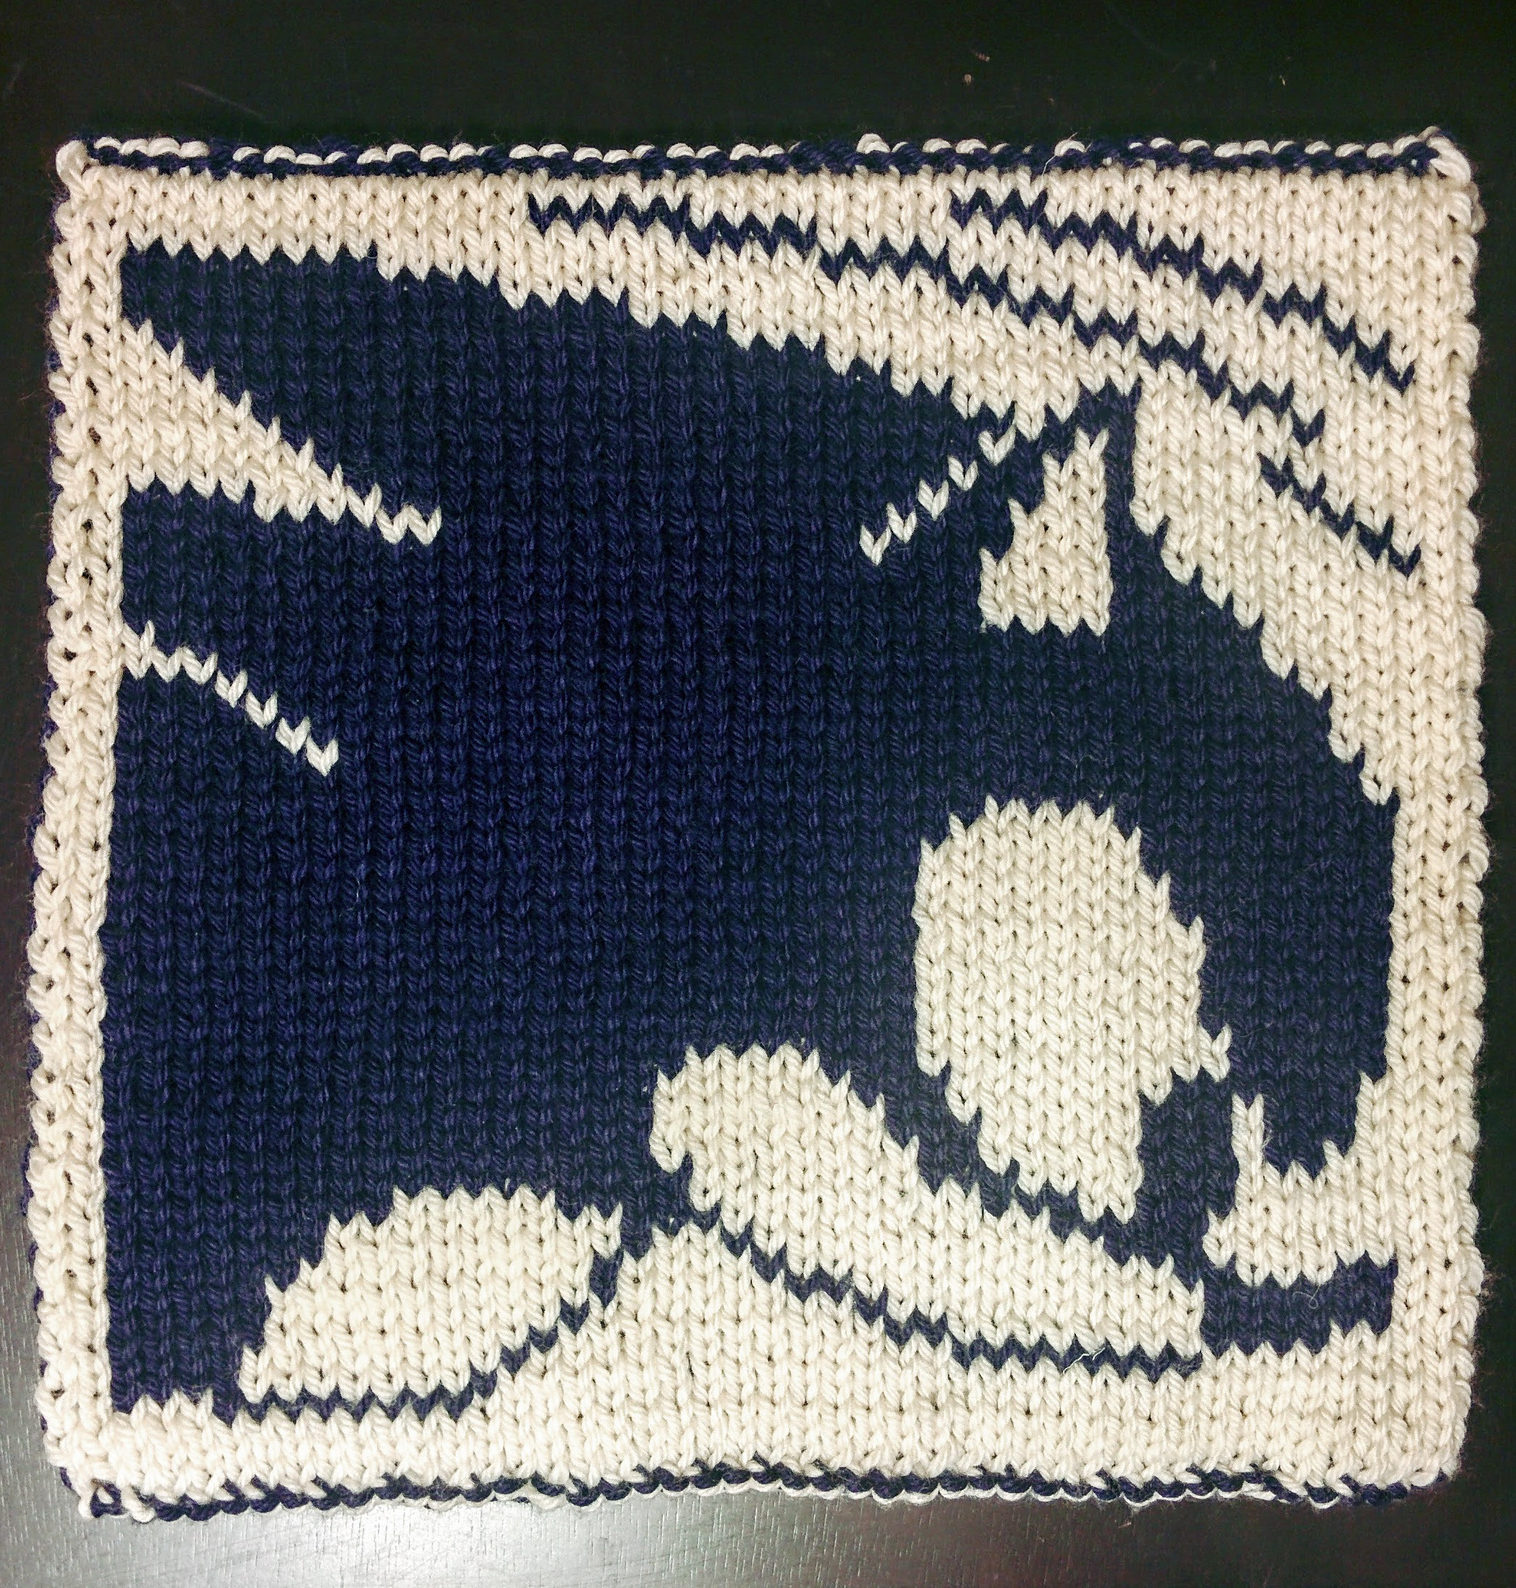 Free Knitting Pattern for Sonic the Hedgehog Block